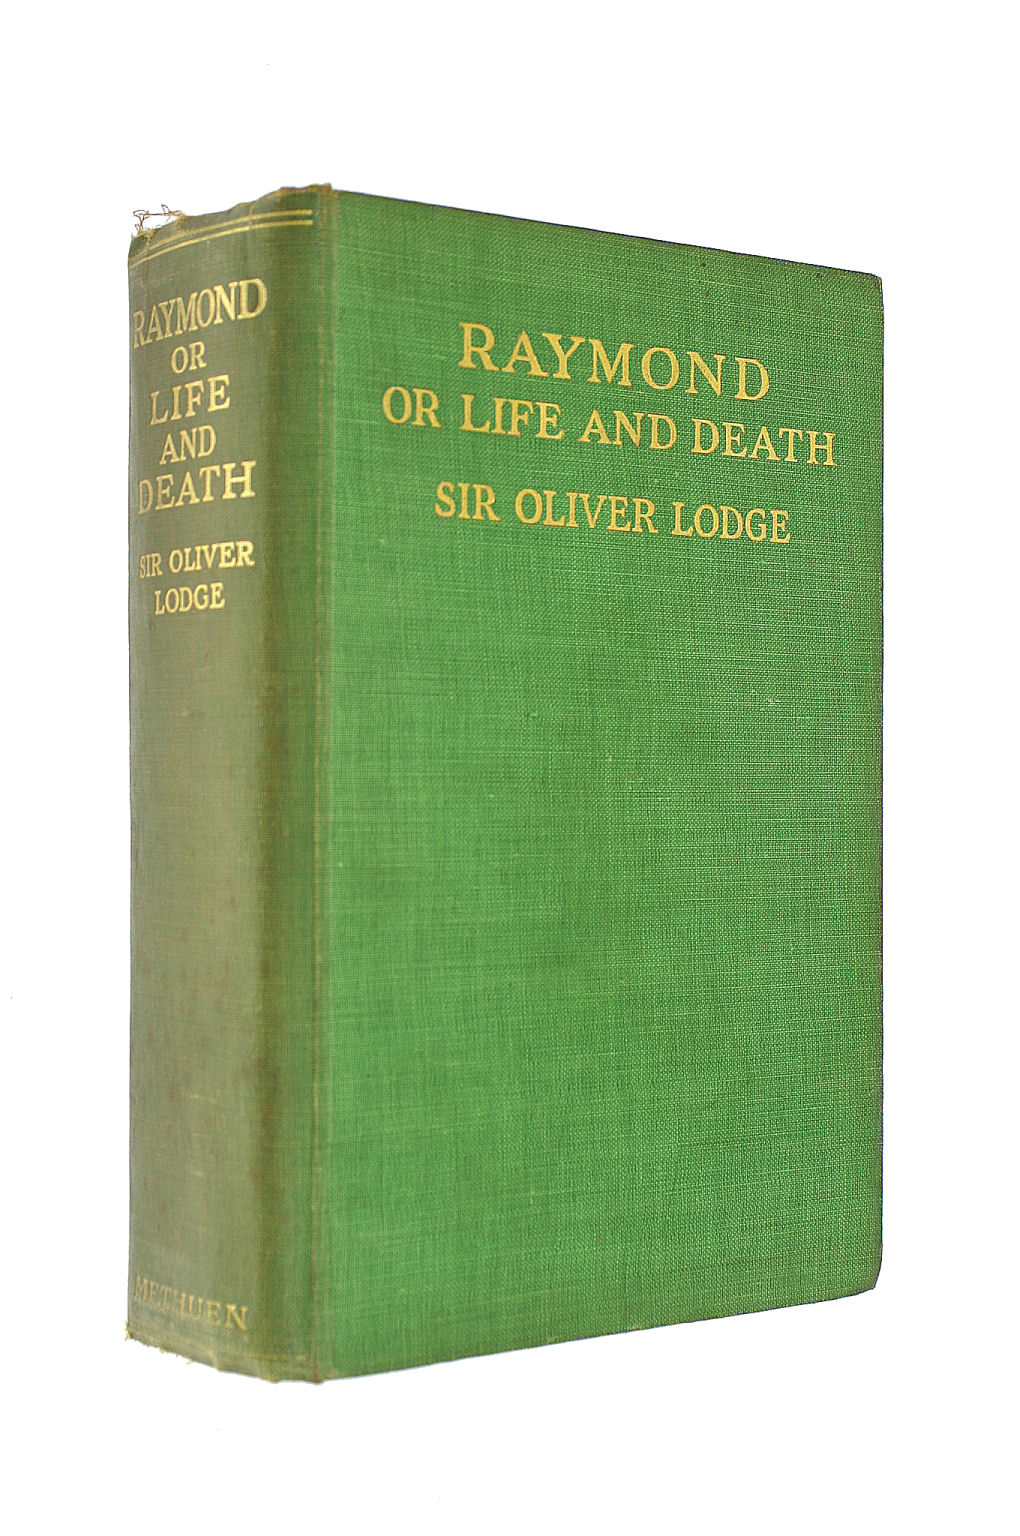 Image for Raymond, or Life and Death, with Examples of the Evidence for Survival of Memory and Affection After Death